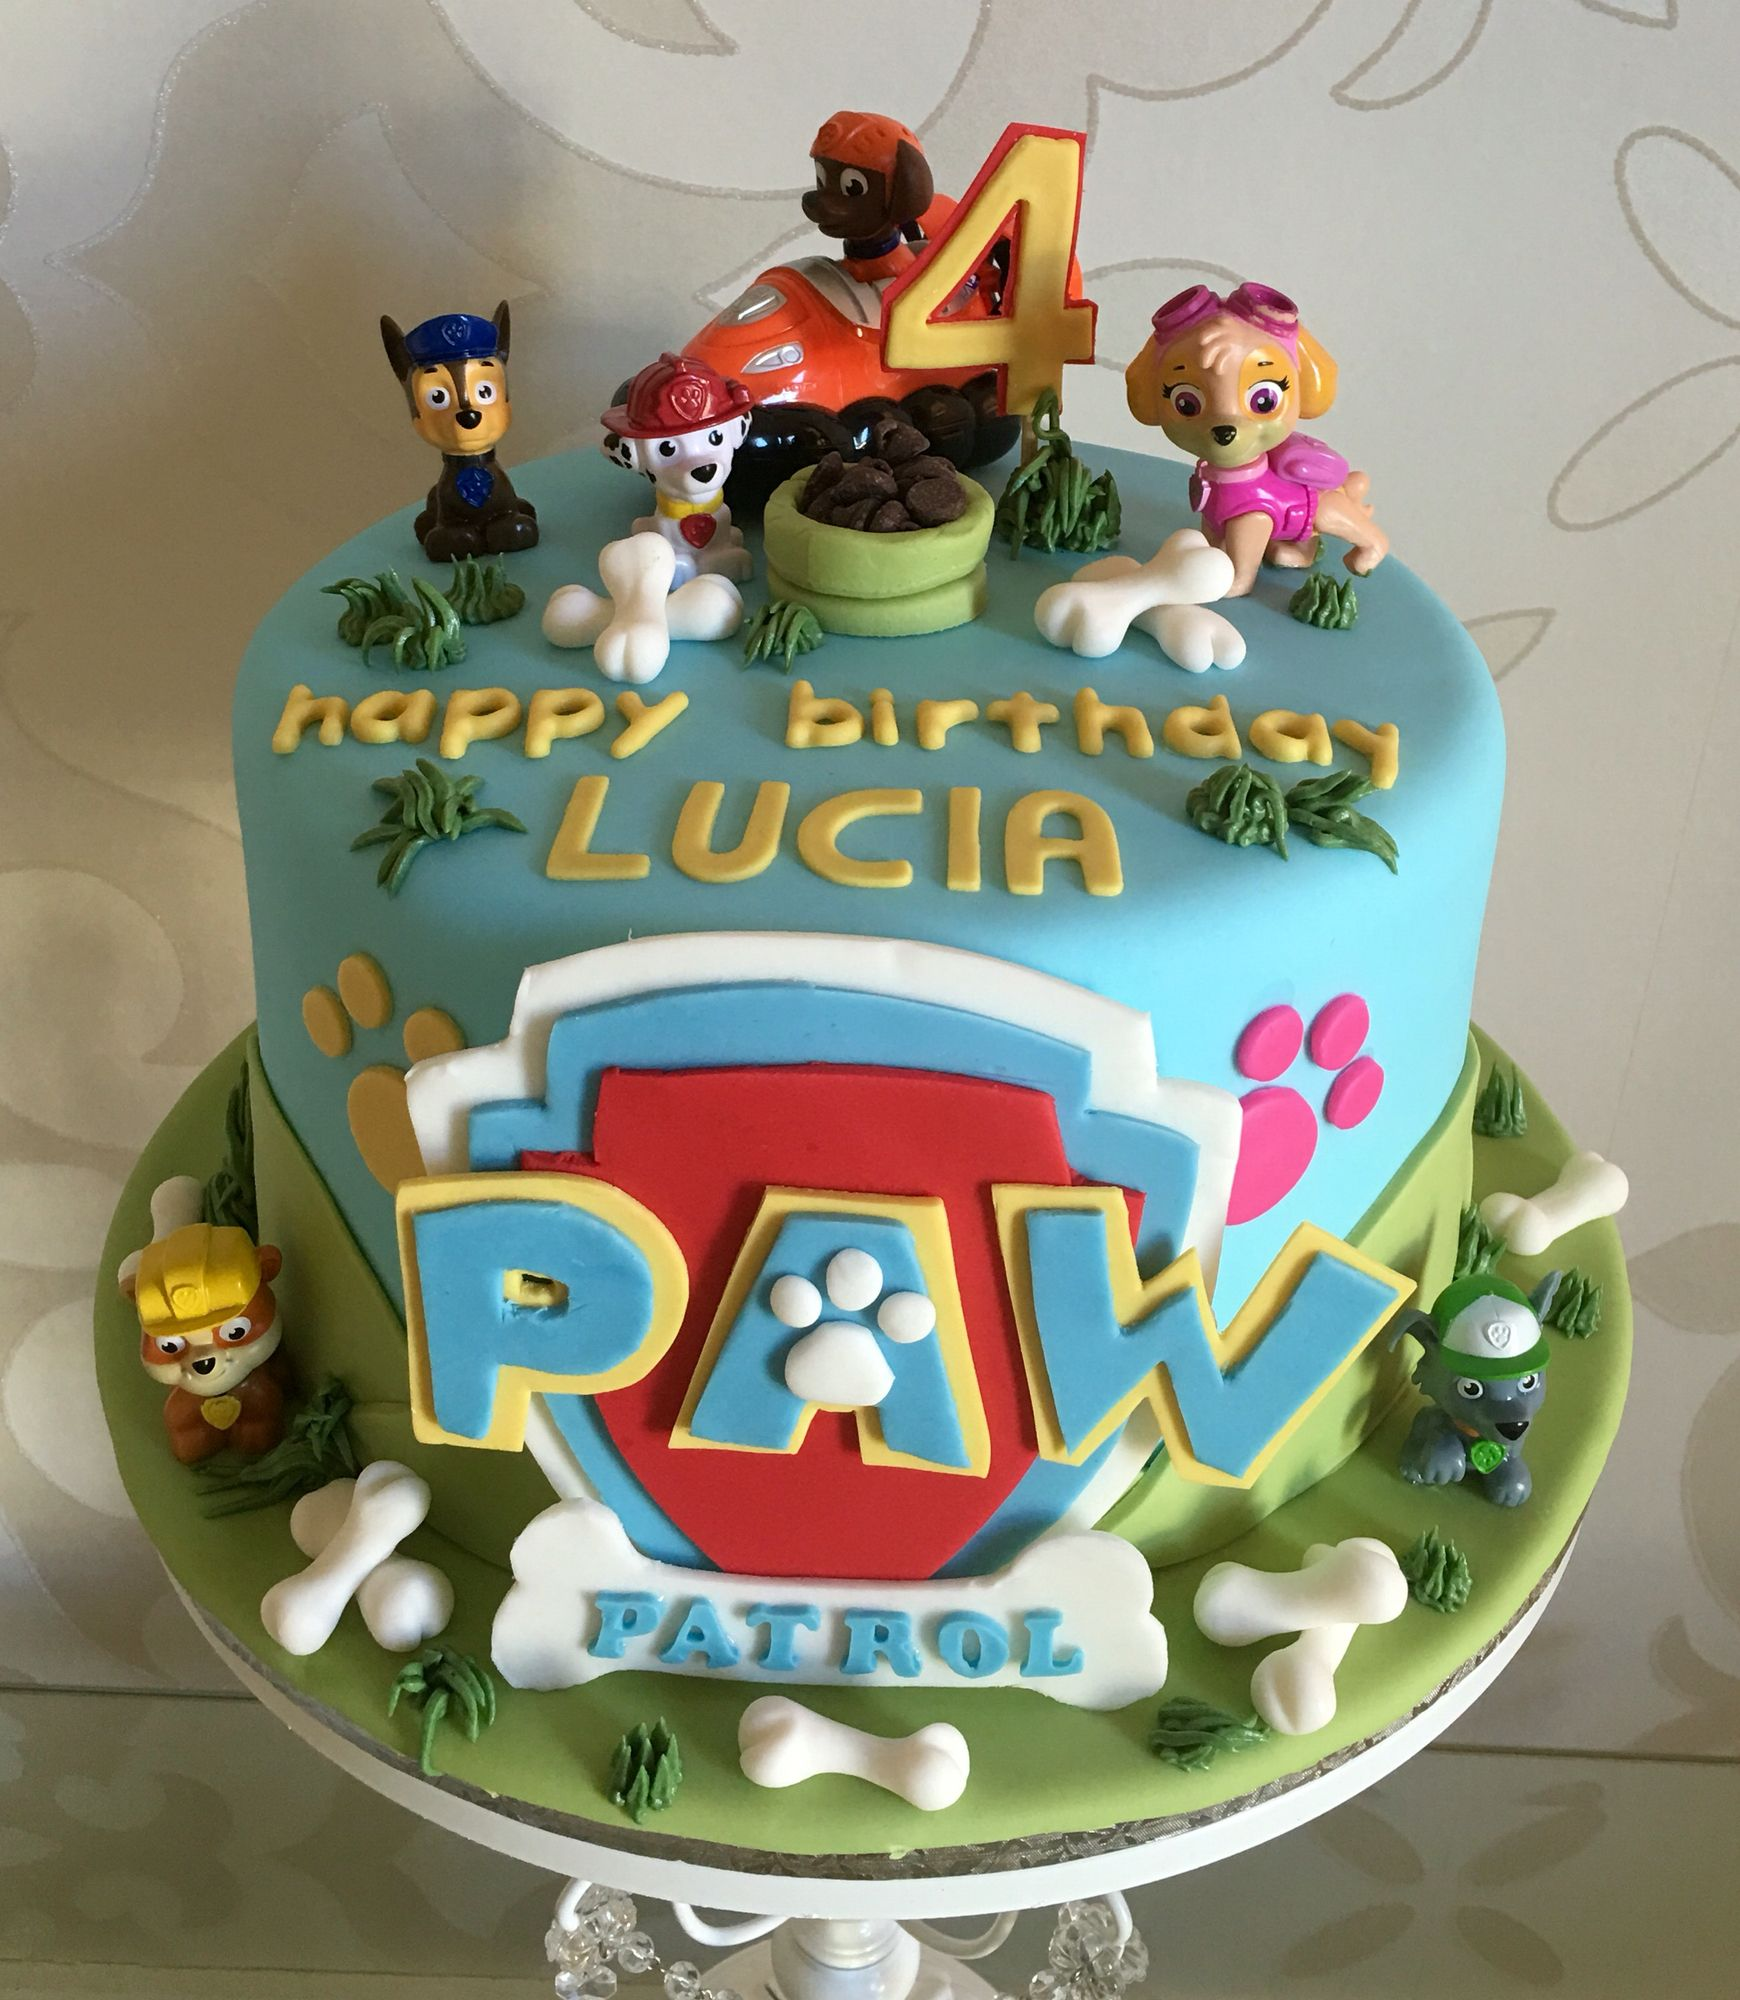 4 Years Old Paw Patrol Birthday Cake Paw Patrol Birthday Cake